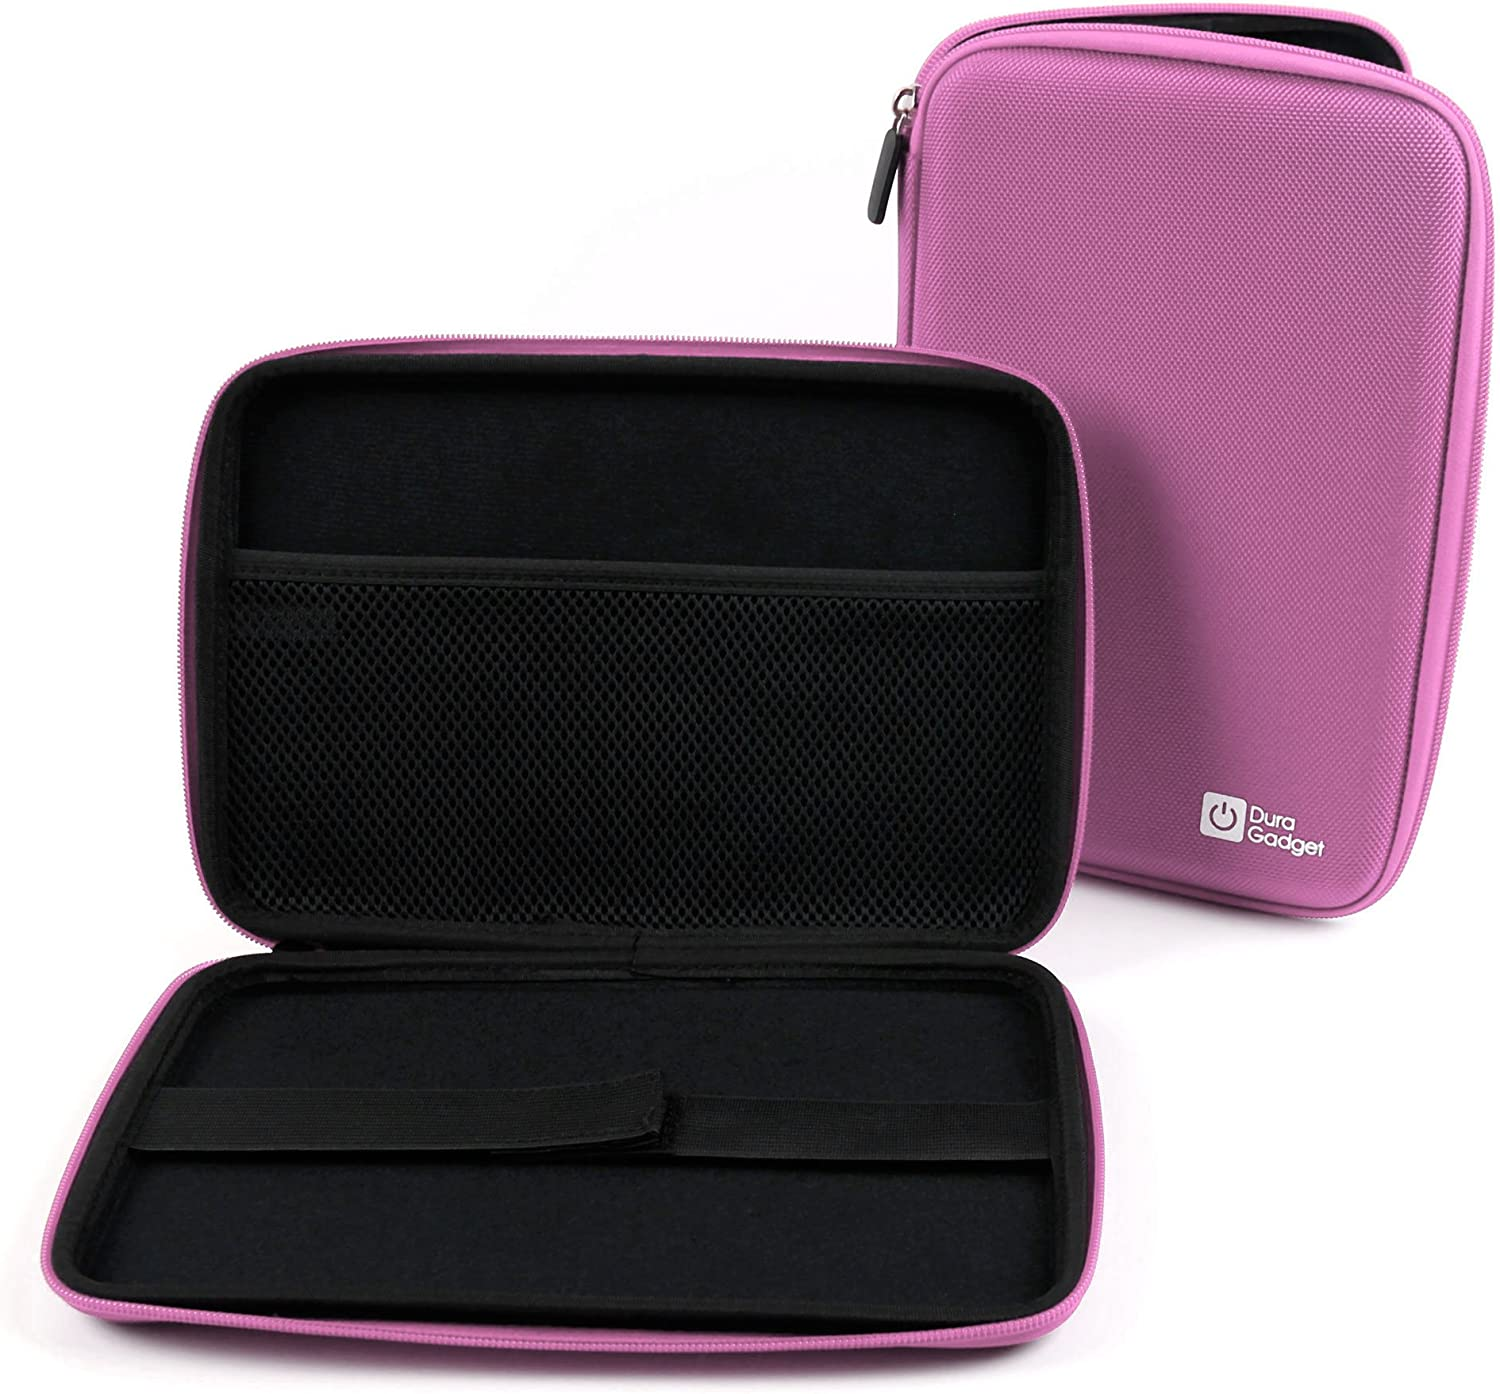 DURAGADGET Pink Rigid Protective Zip Armoured Case With Soft Inner Lining & Netted Pocket For Acer Iconia A1-810-L416 7.9-Inch 16 GB Tablet